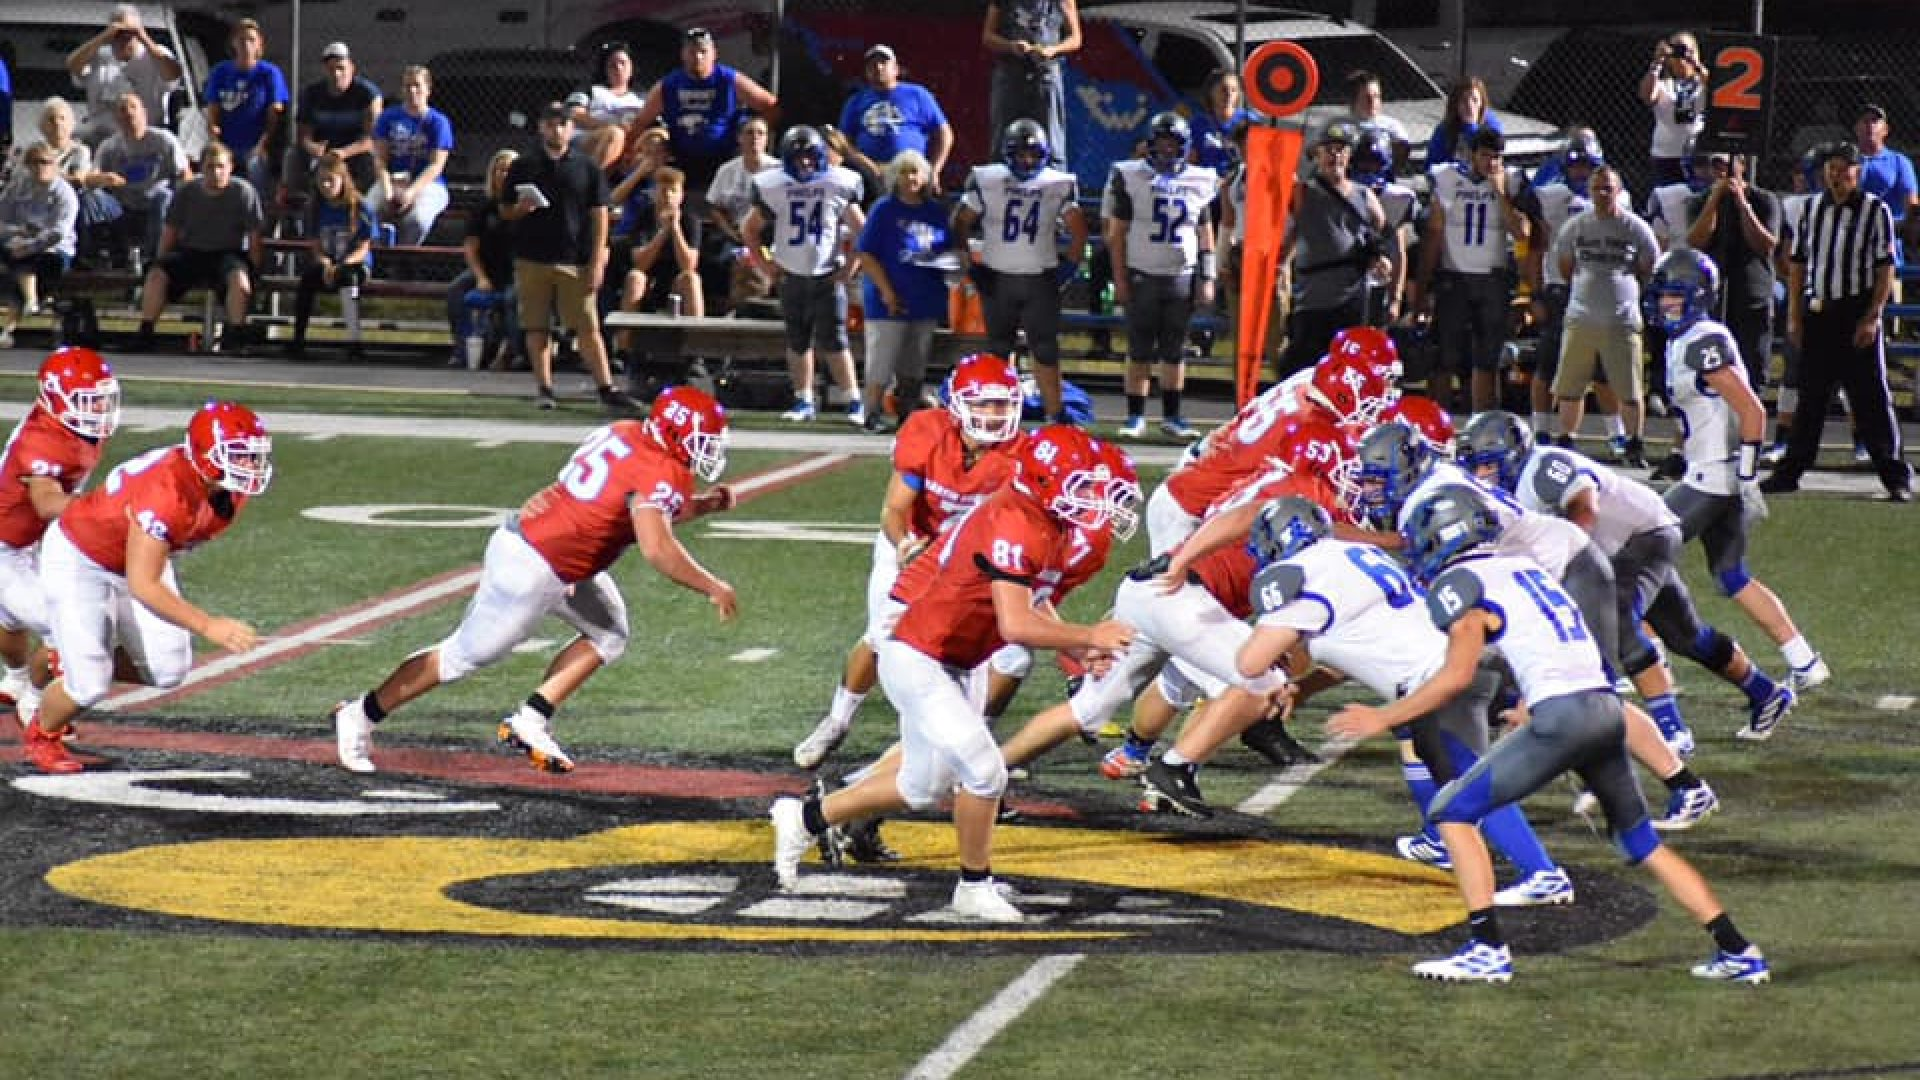 HS FOOTBALL: Cardinals roll past Hornets in Harvest Bowl